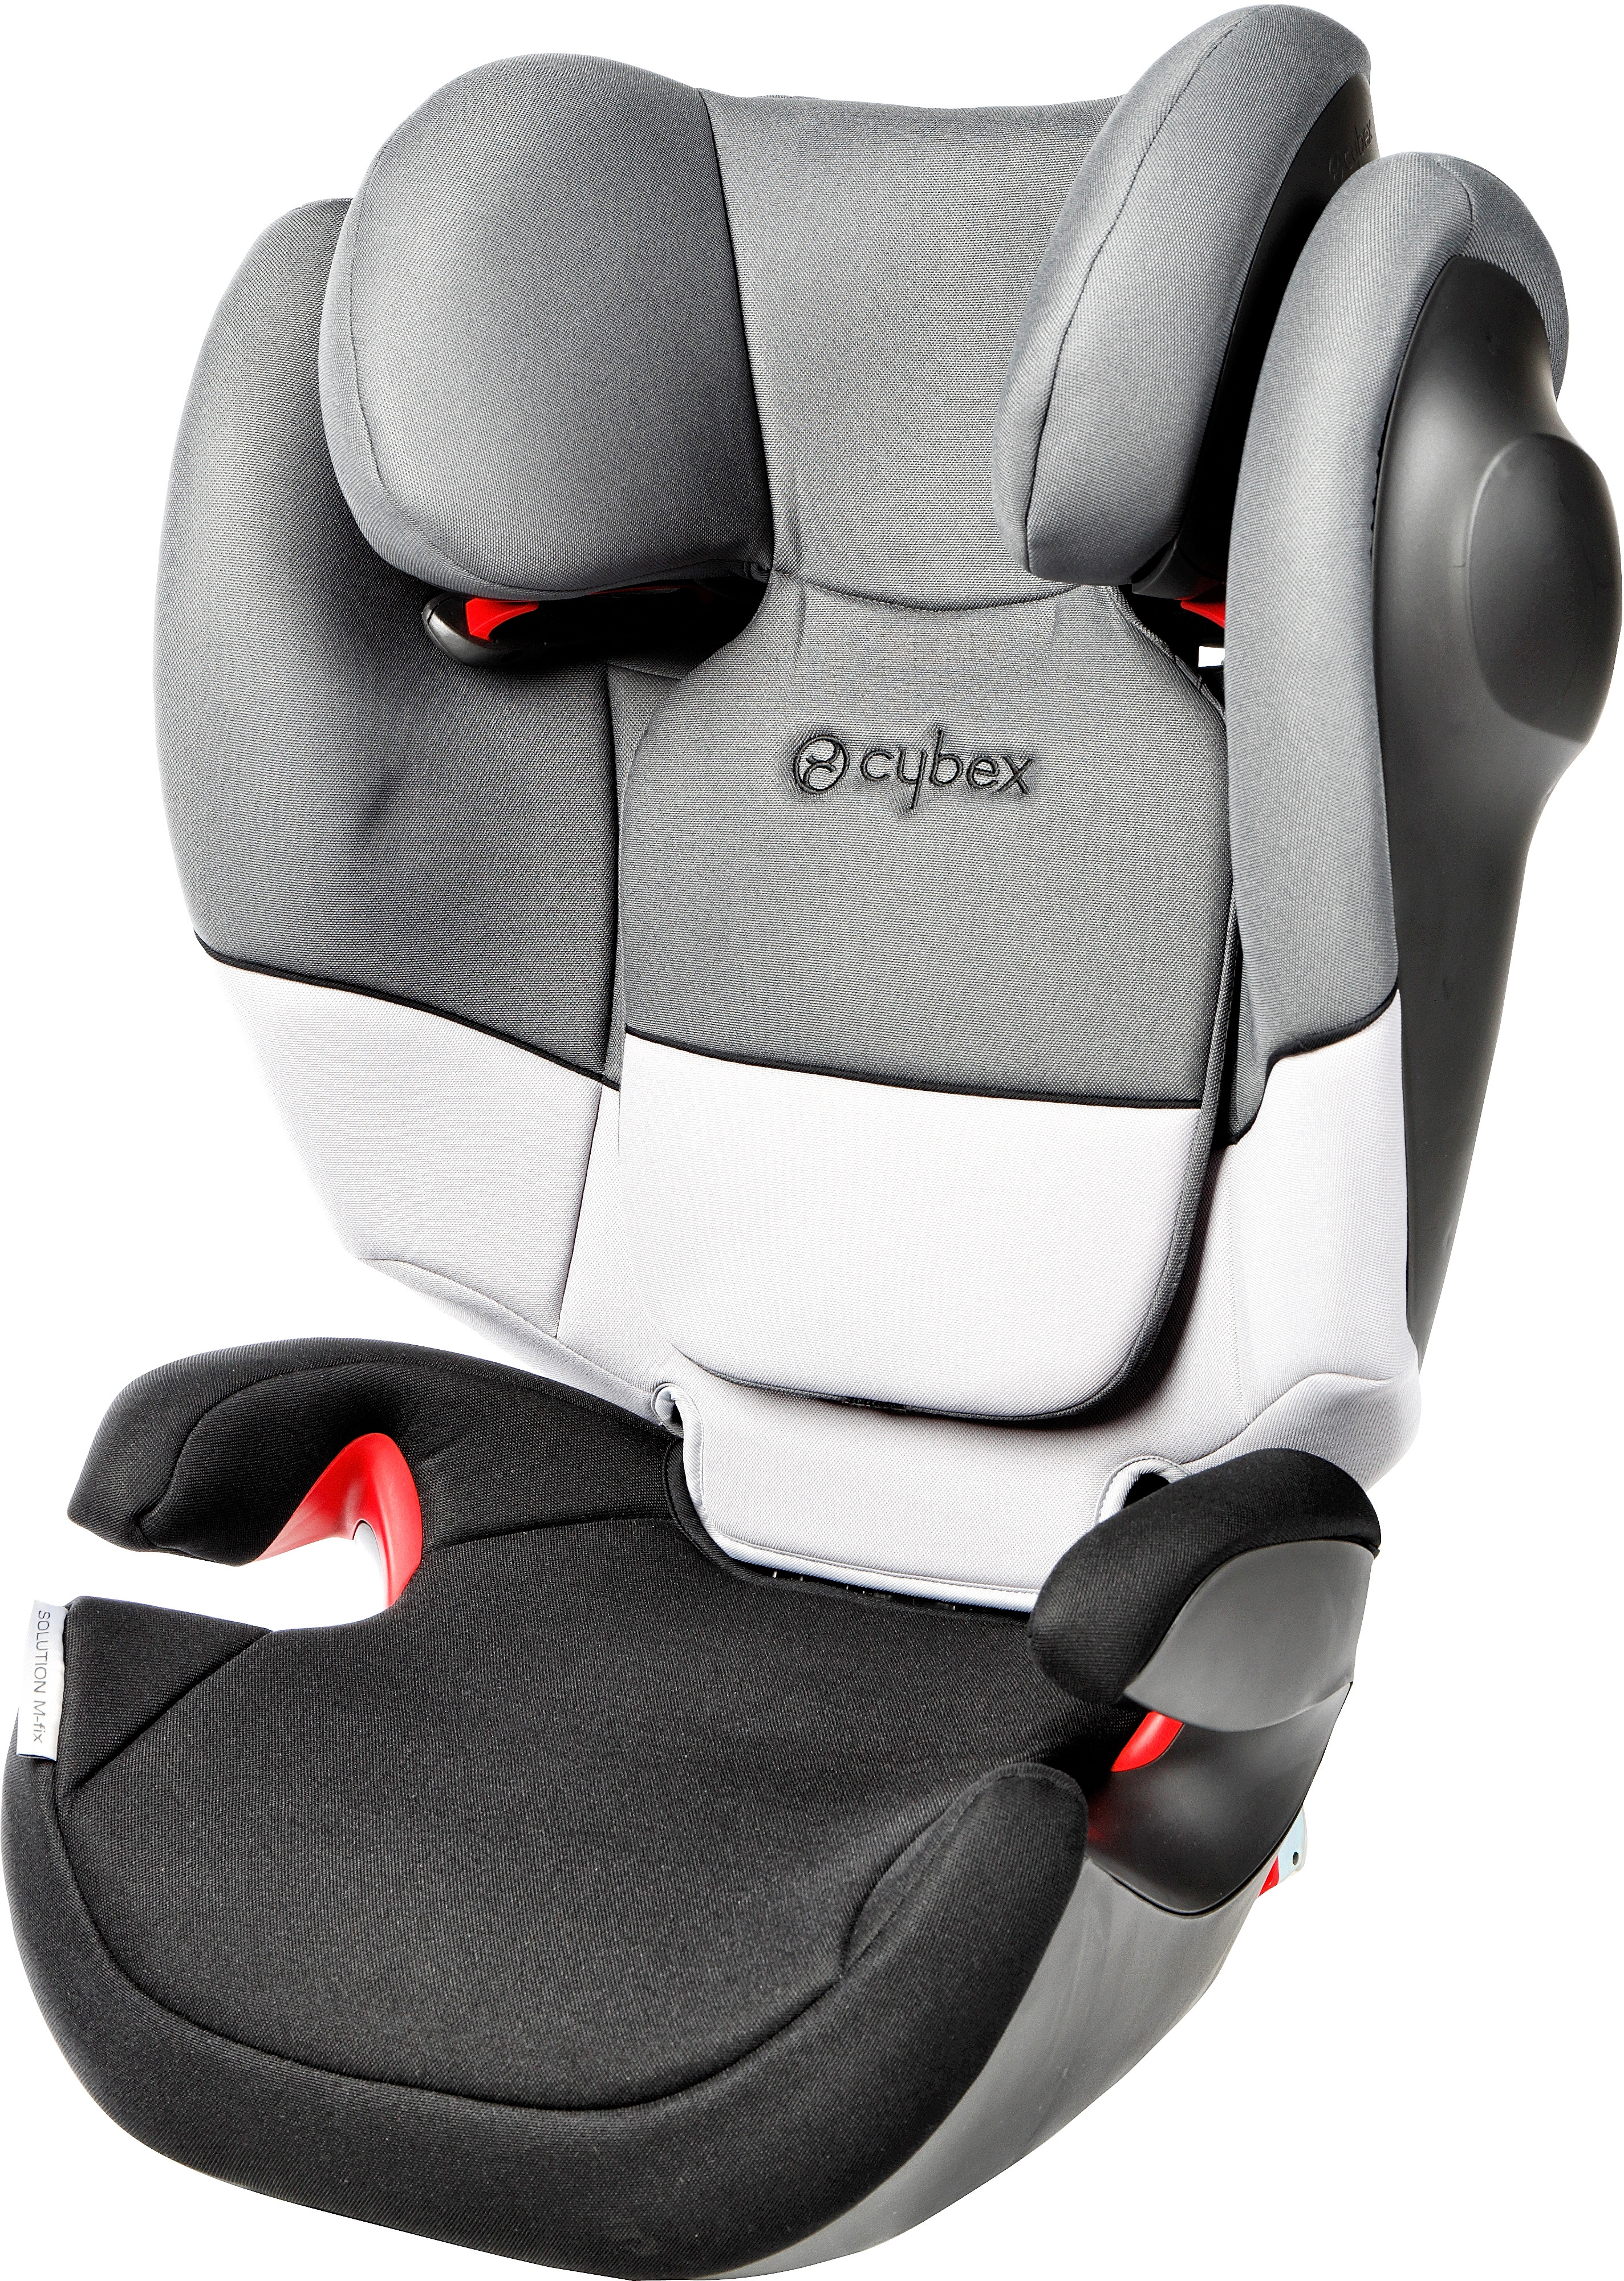 cybex solution m fix sl test prijzen en specificaties. Black Bedroom Furniture Sets. Home Design Ideas